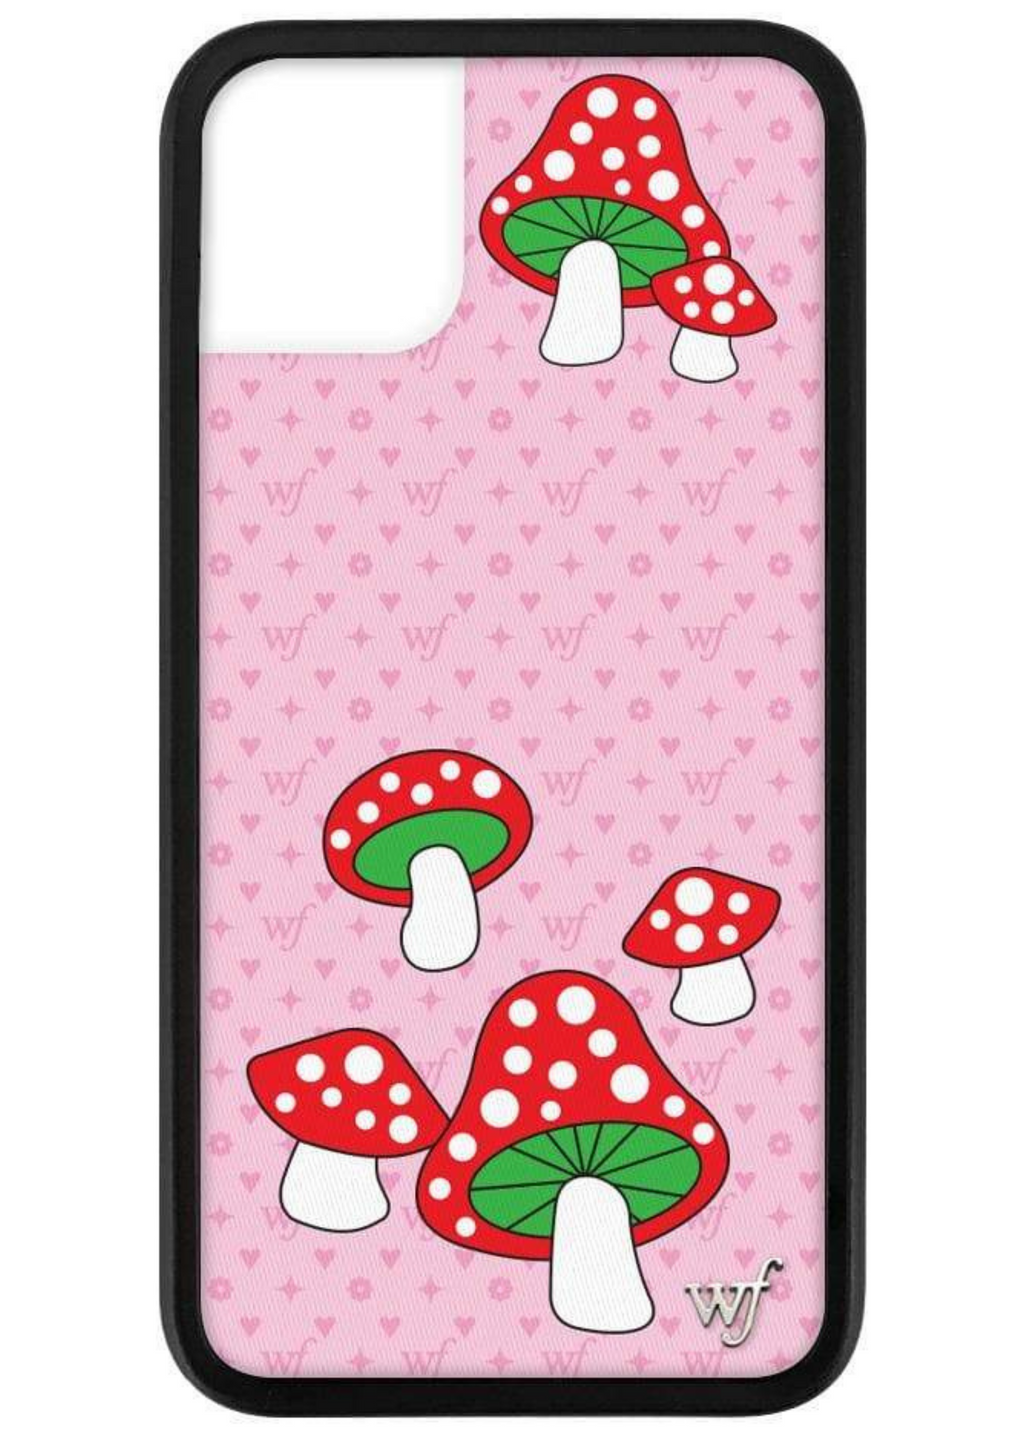 Shrooms iPhone Case ★ Pink